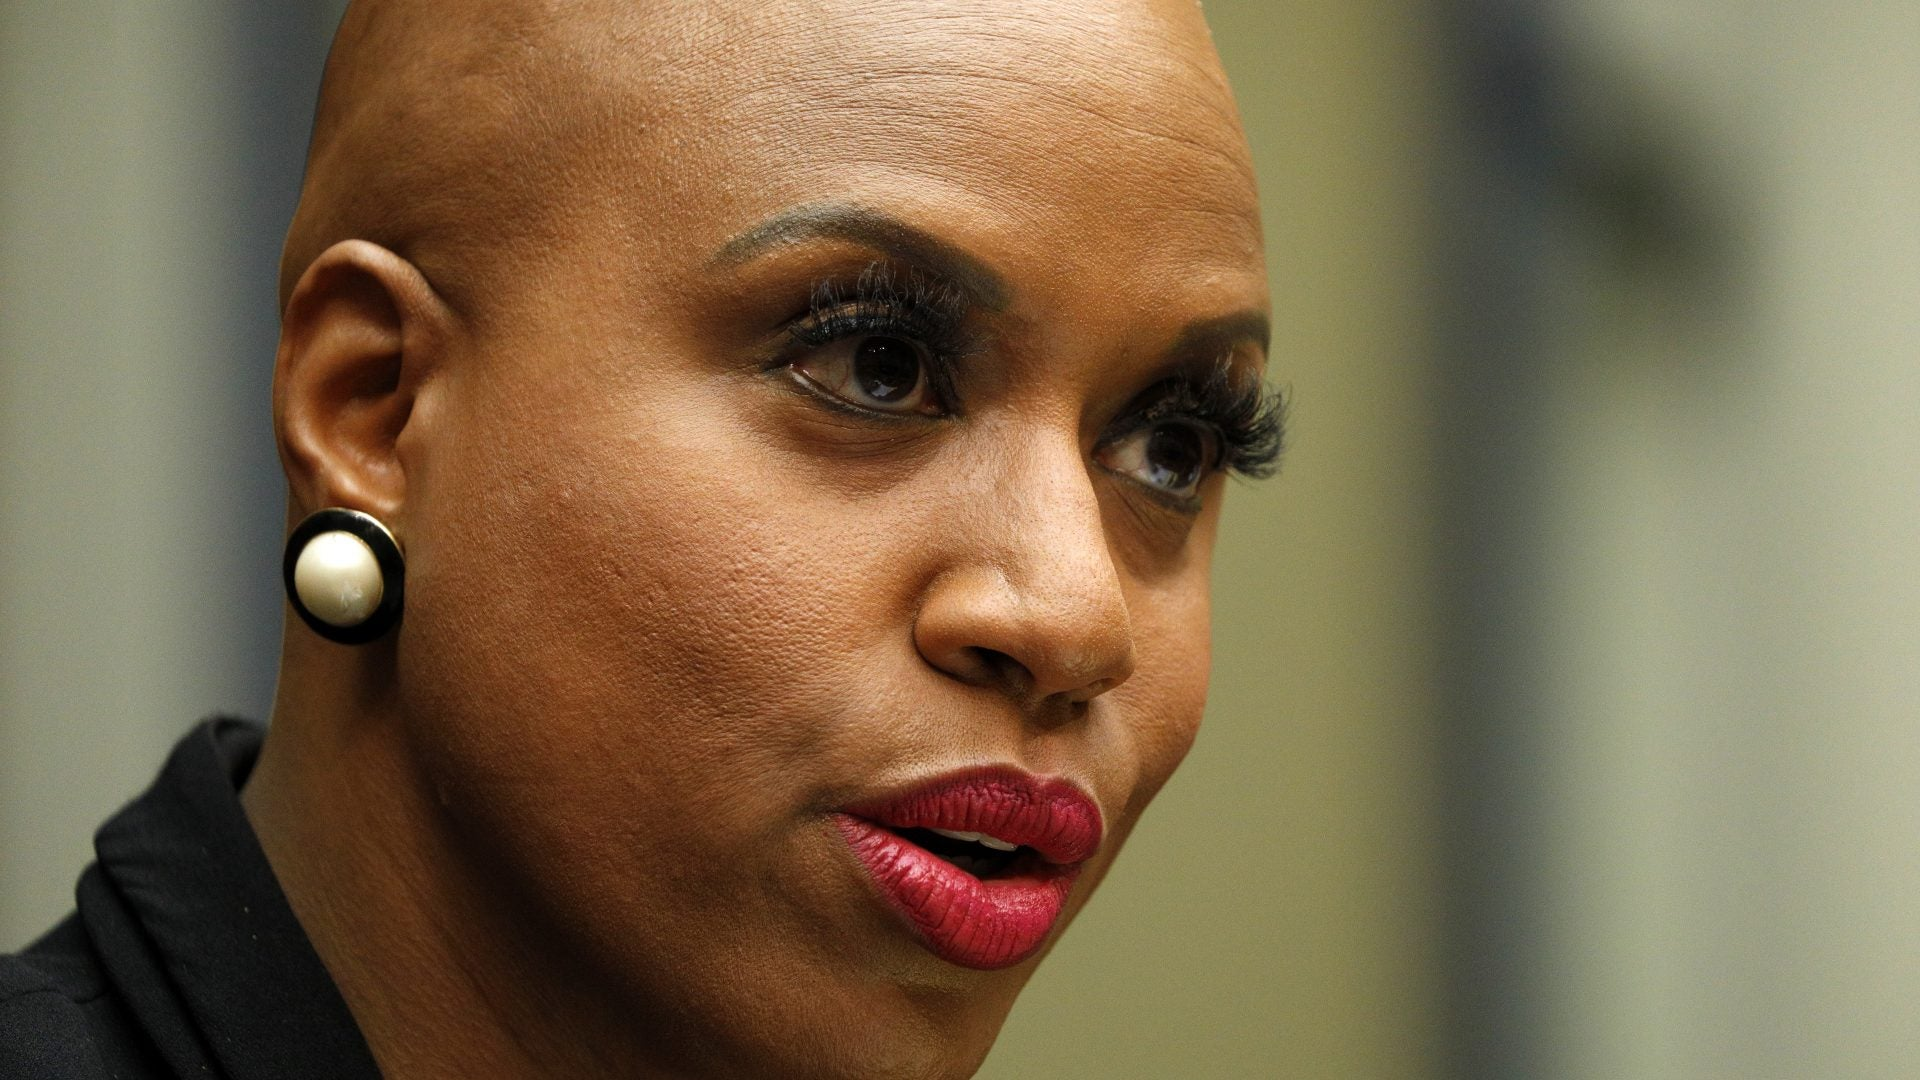 Rep. Pressley's Panic Buttons Were Torn Out During Attack On Capitol. No One Knows Why.